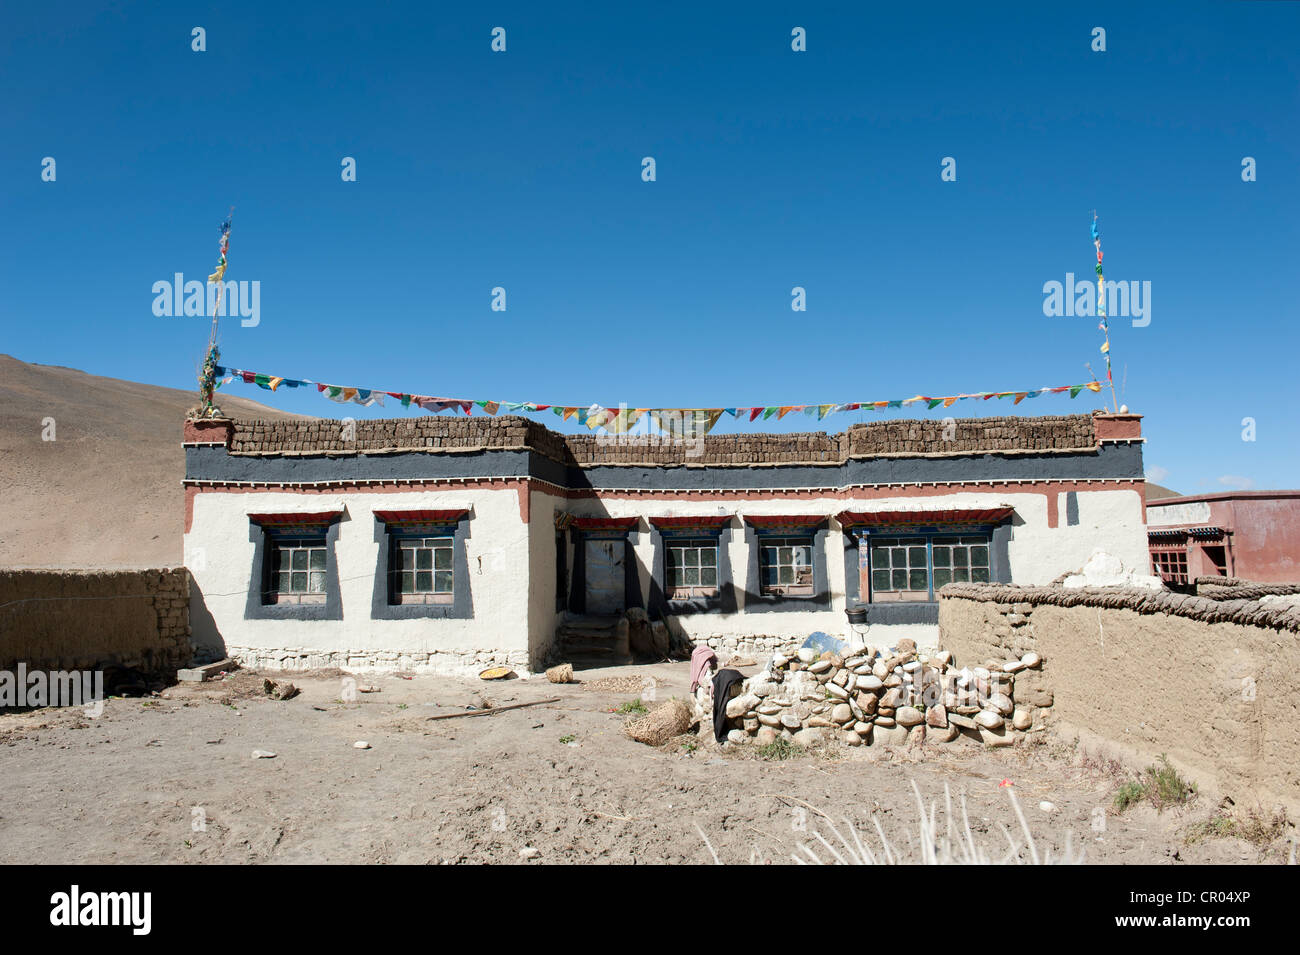 Typical Tibetan house, flat roof, village Lung Chang at Old Tingri, Mount Everest region, Himalayan, central Tibet, - Stock Image